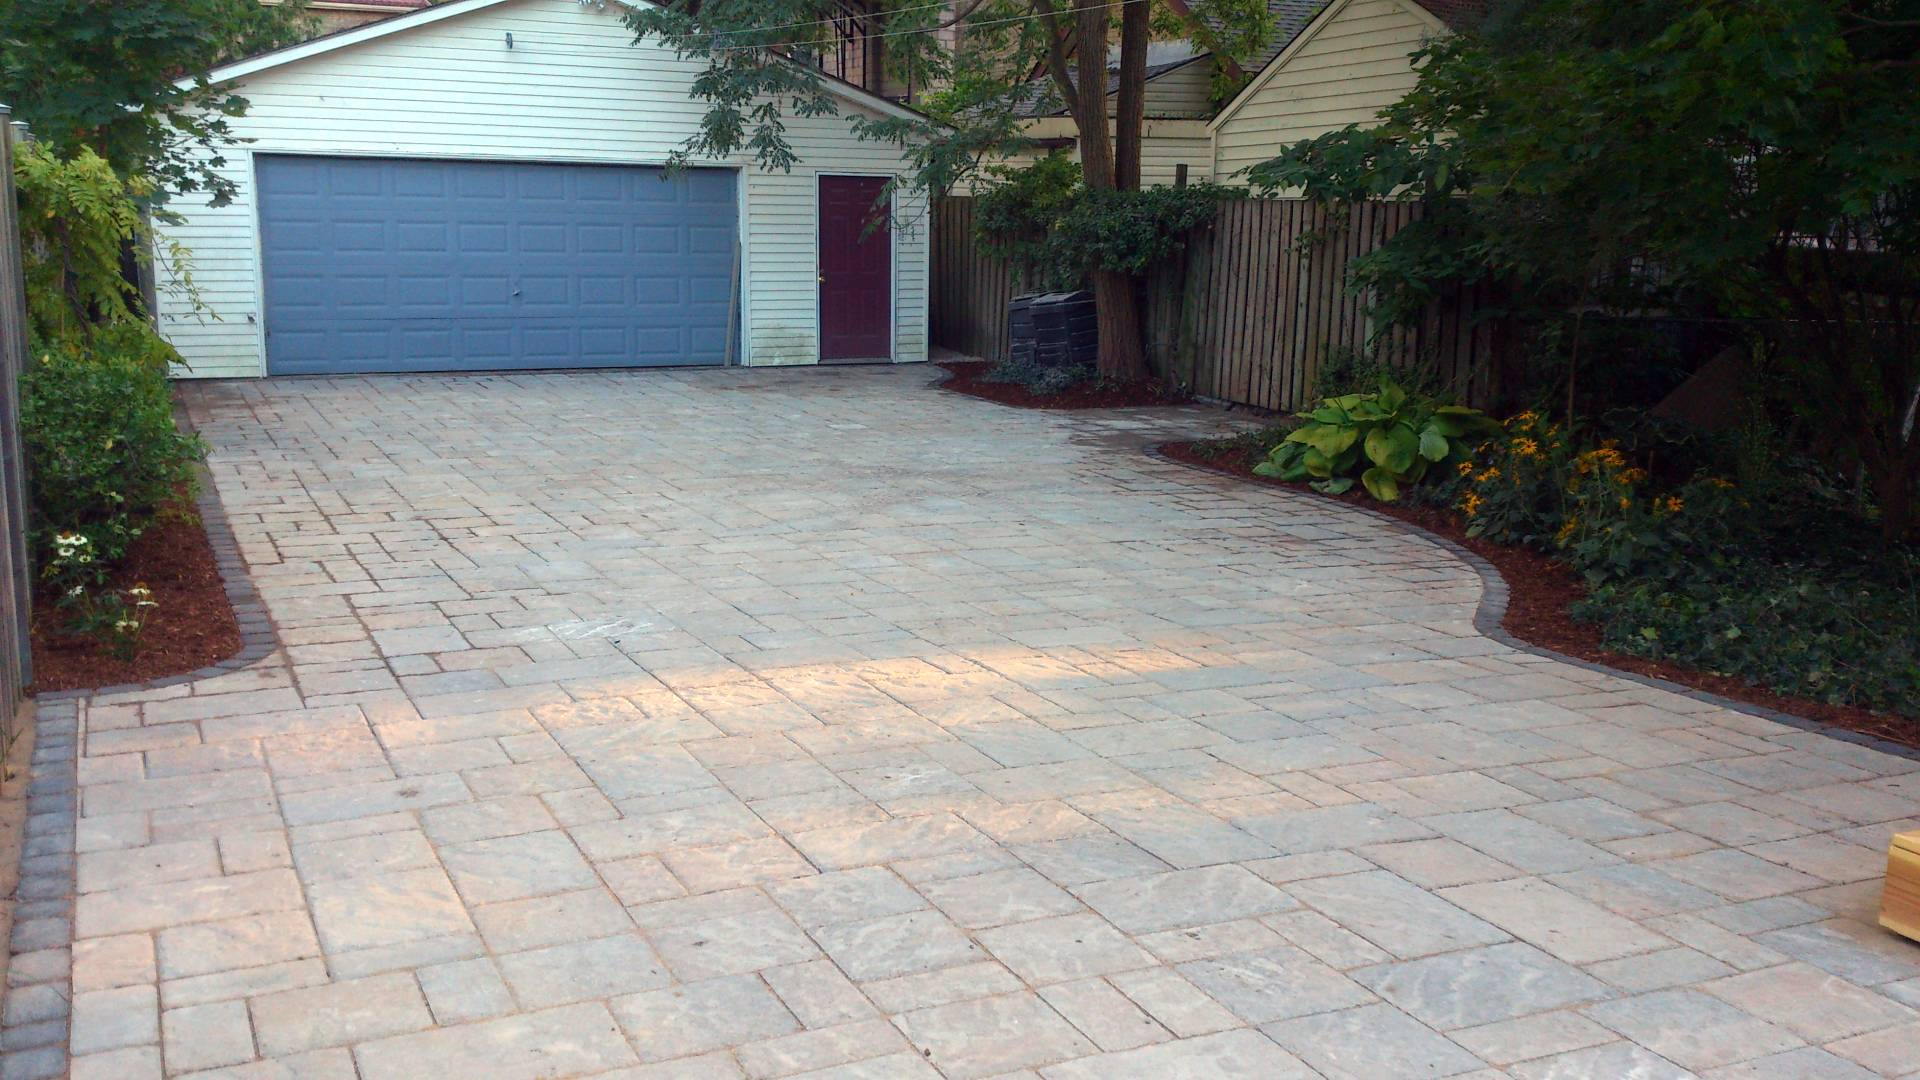 Interlock driveway installation: a landscaping / hardscaping project in London Ontario.